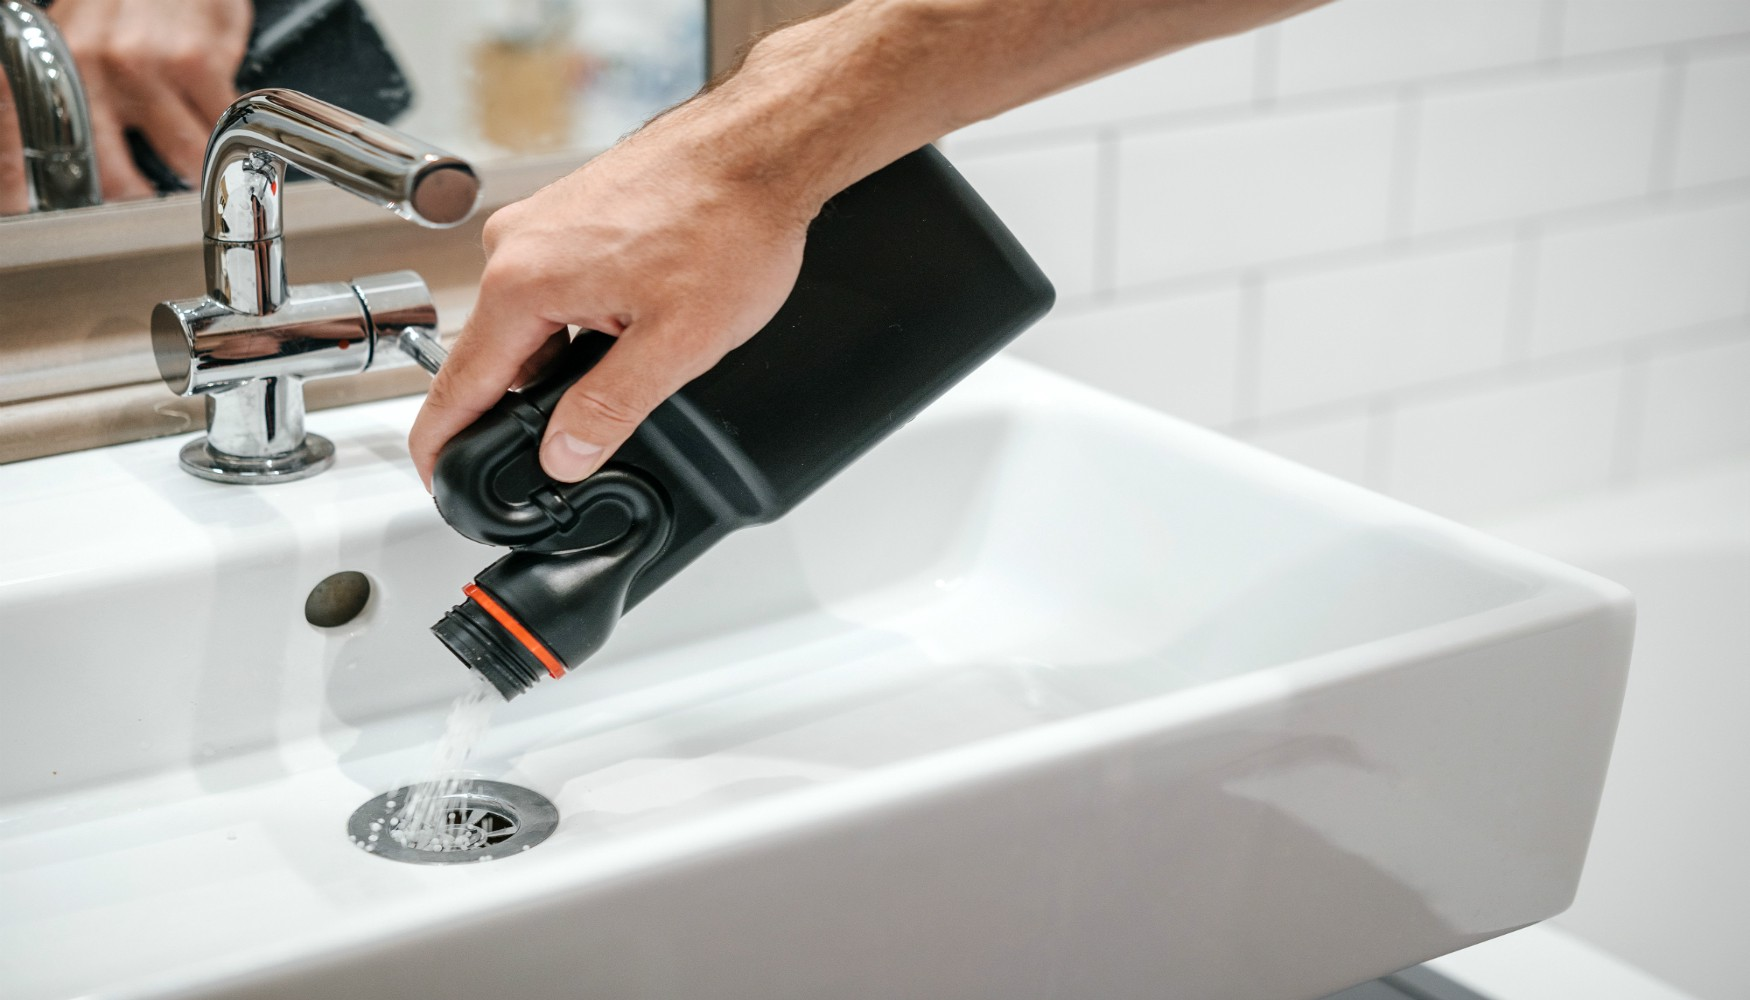 how to unblock a clogged drain